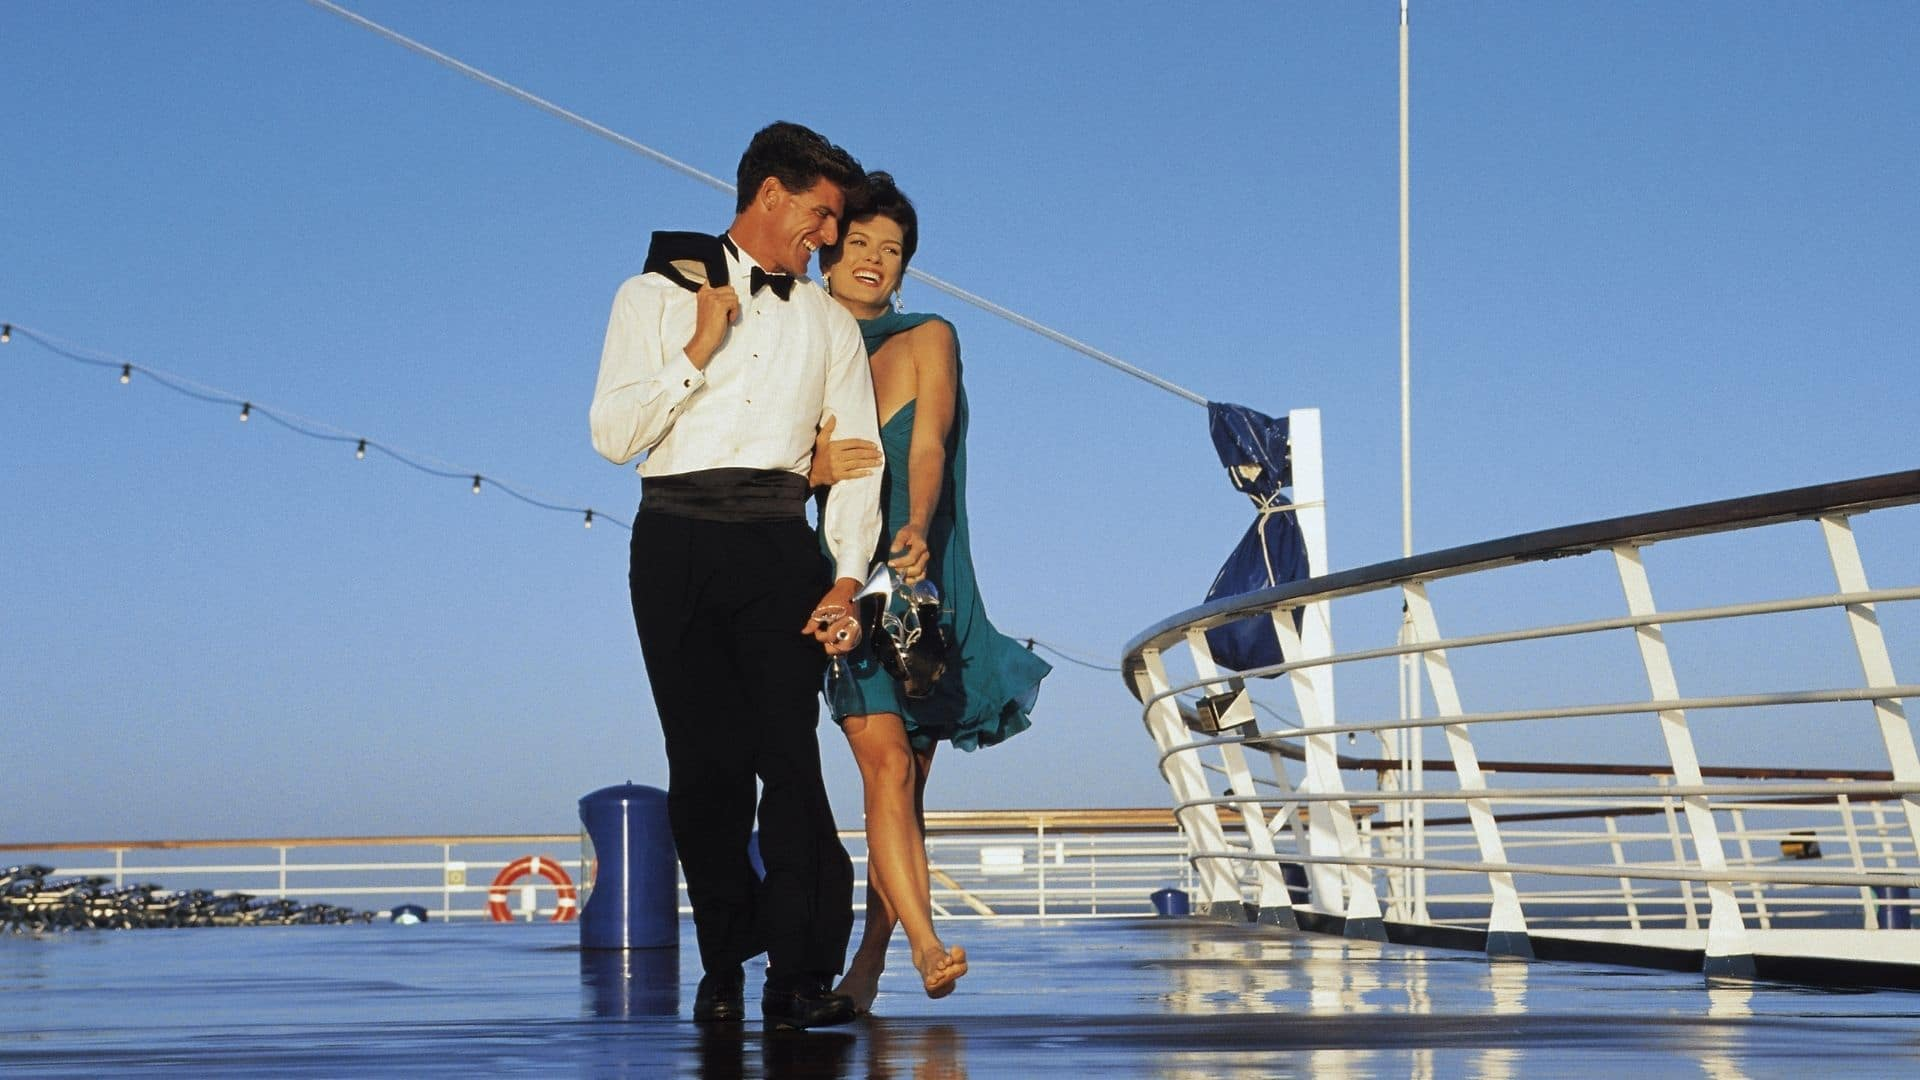 cruise formal night picture